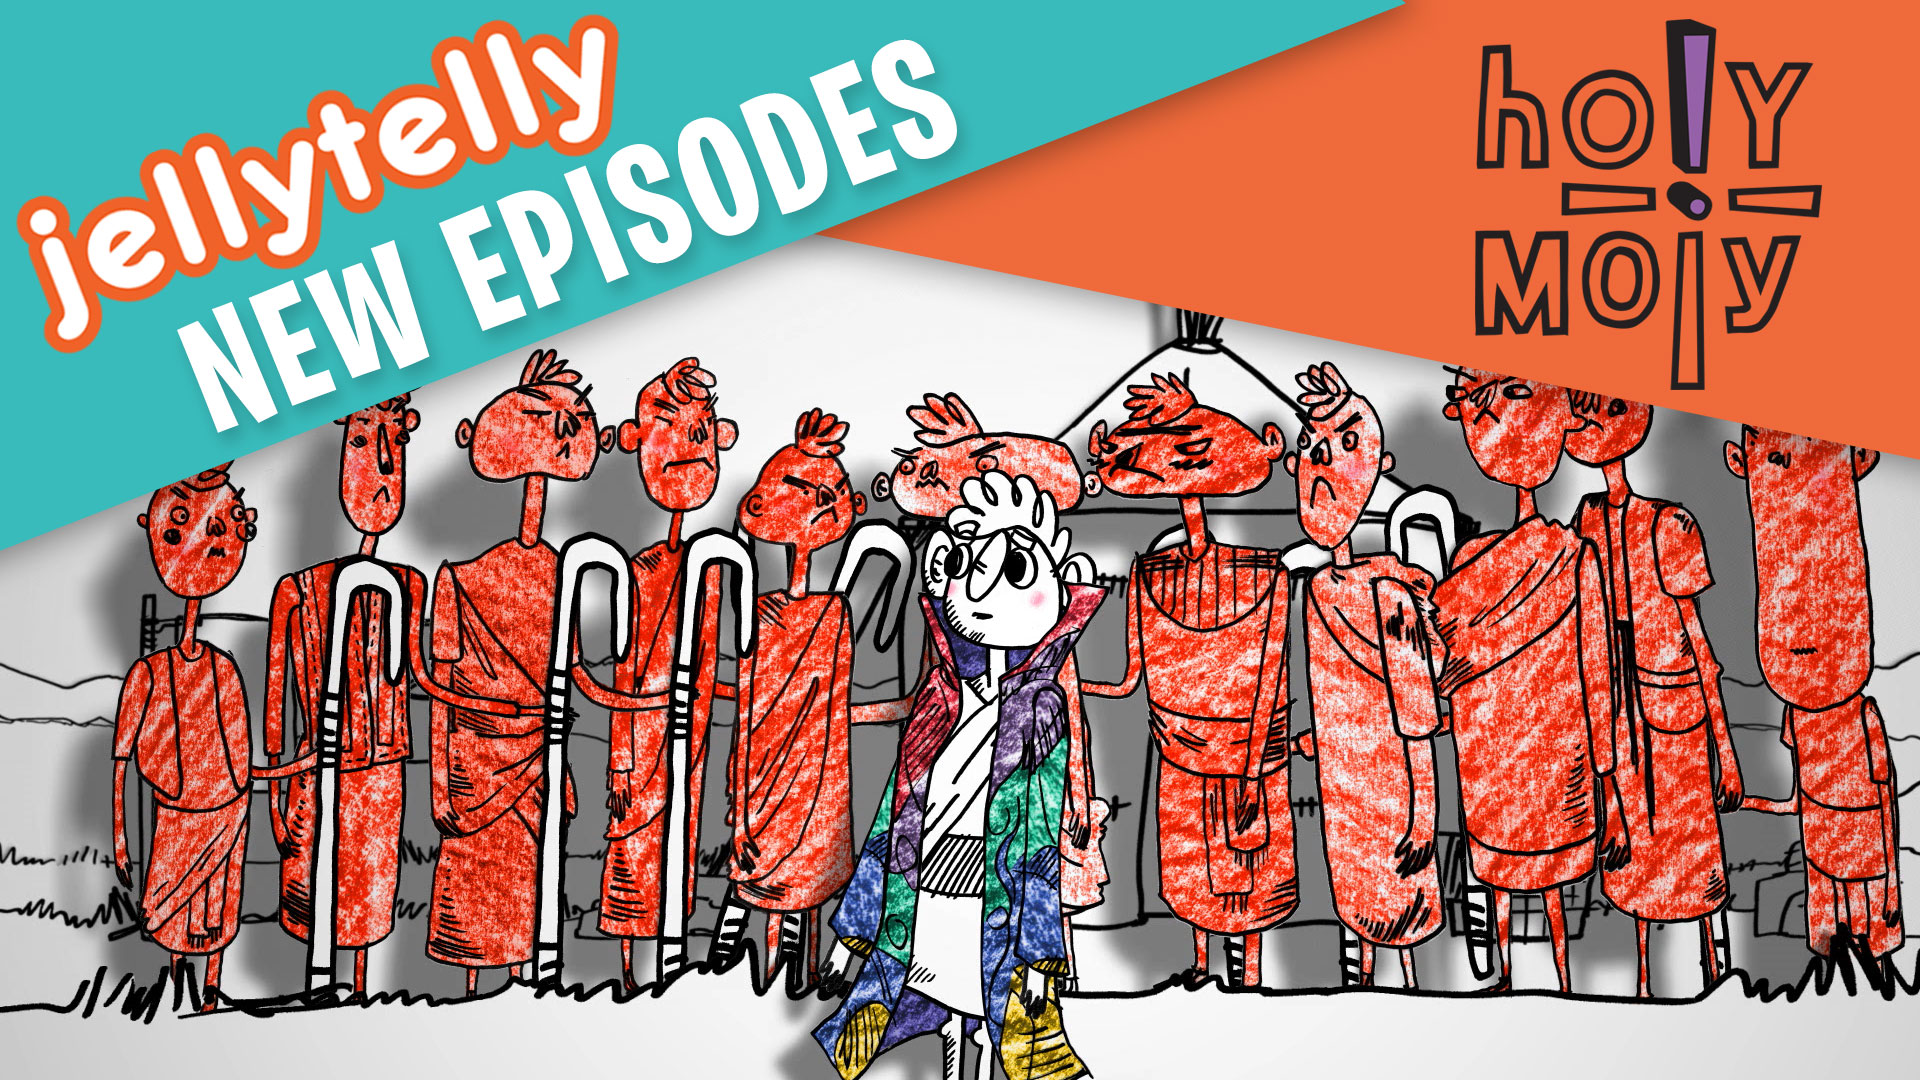 Holy moly ep 09 featured preview image